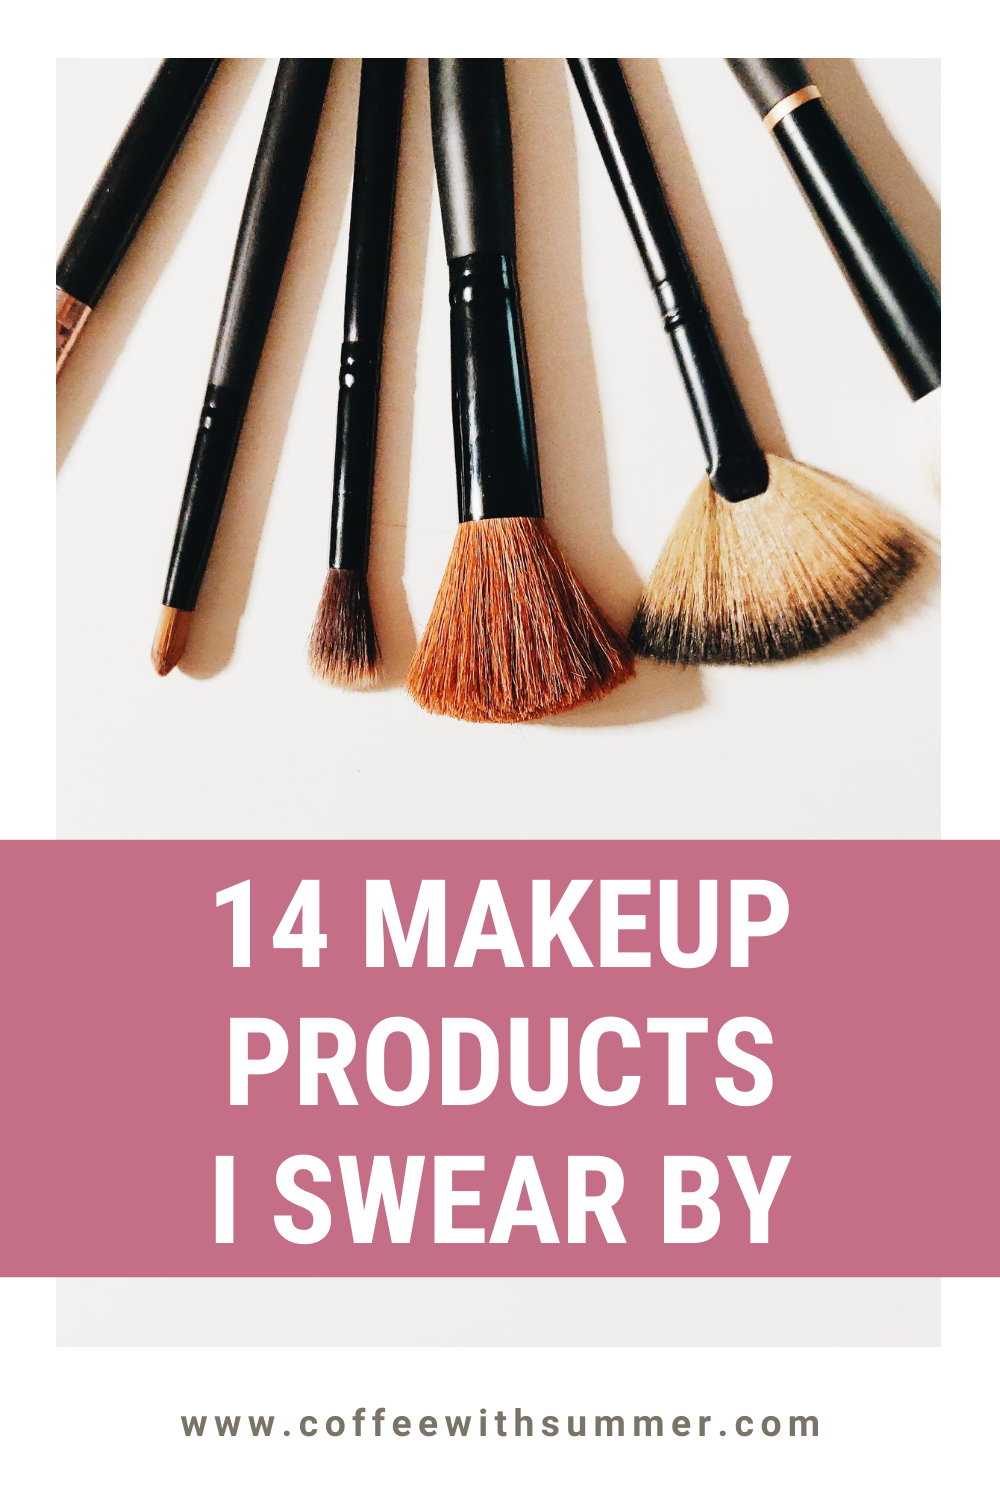 14 Makeup Products I Swear By